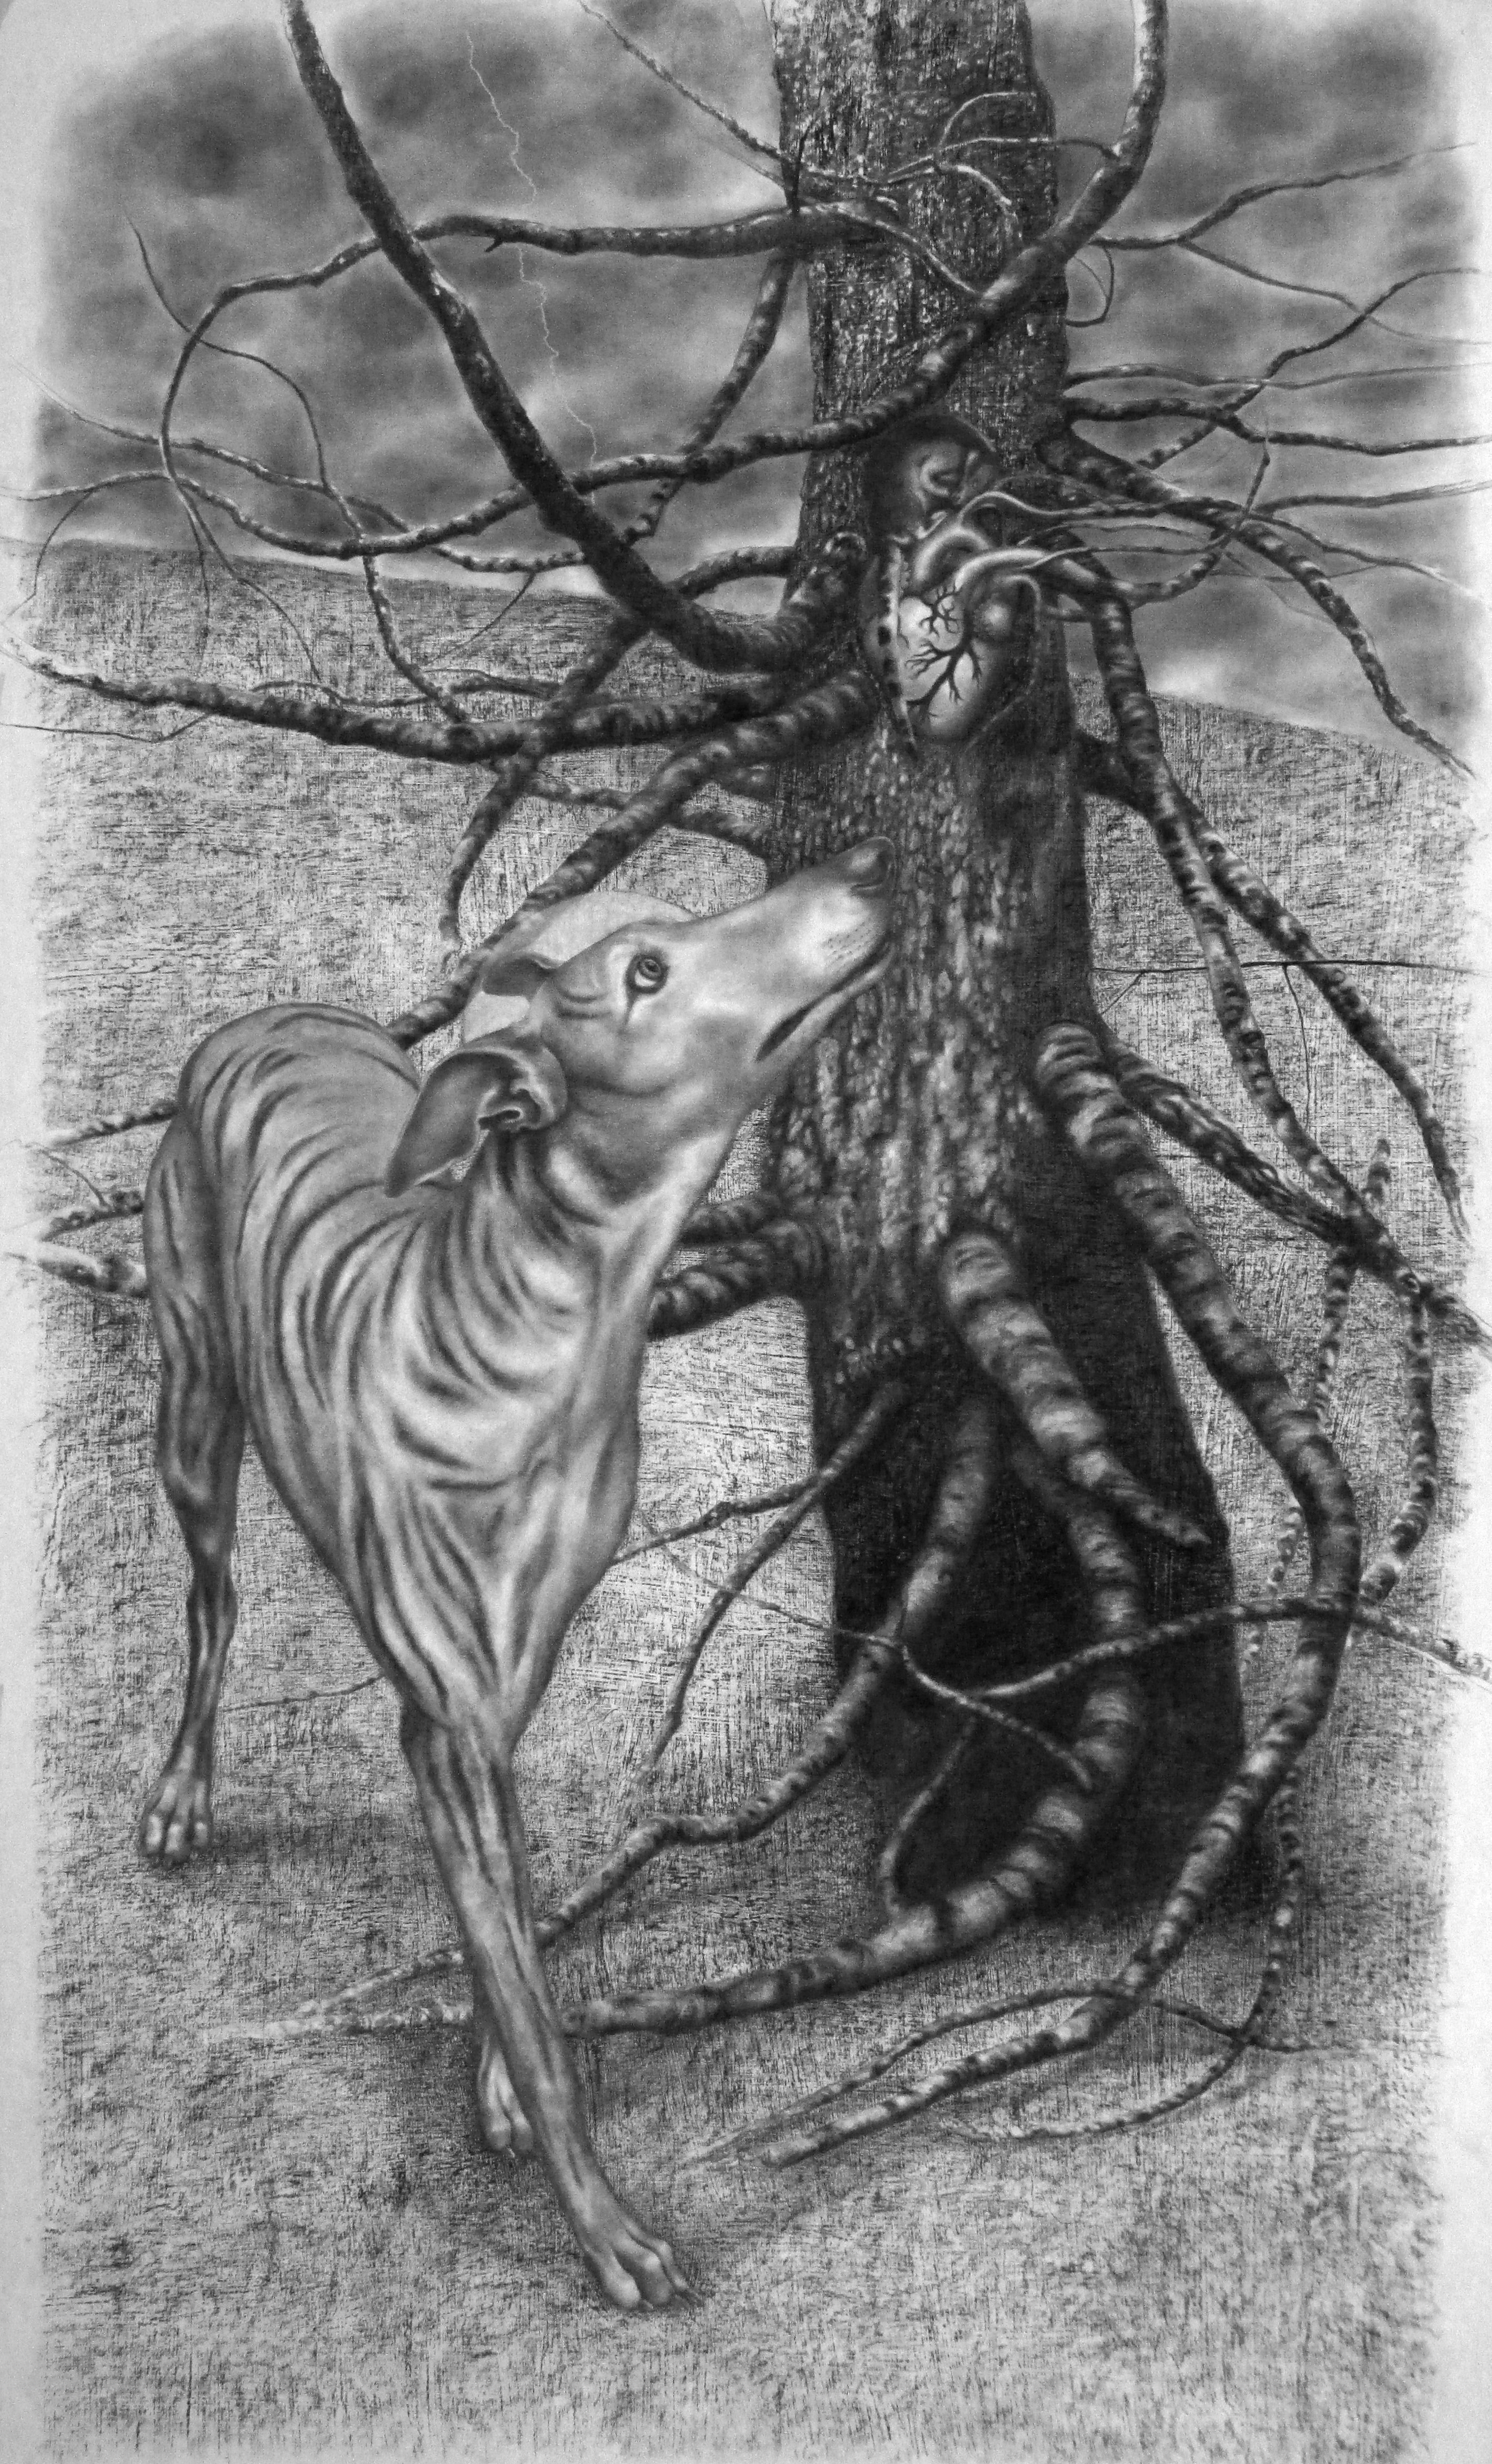 2015-The-Flicker-and-the-Sentinel-Cardiac-Alert-Dog-New-Work-of-Dogs-series-charcoal-on-gessoes-paper-54-x-42